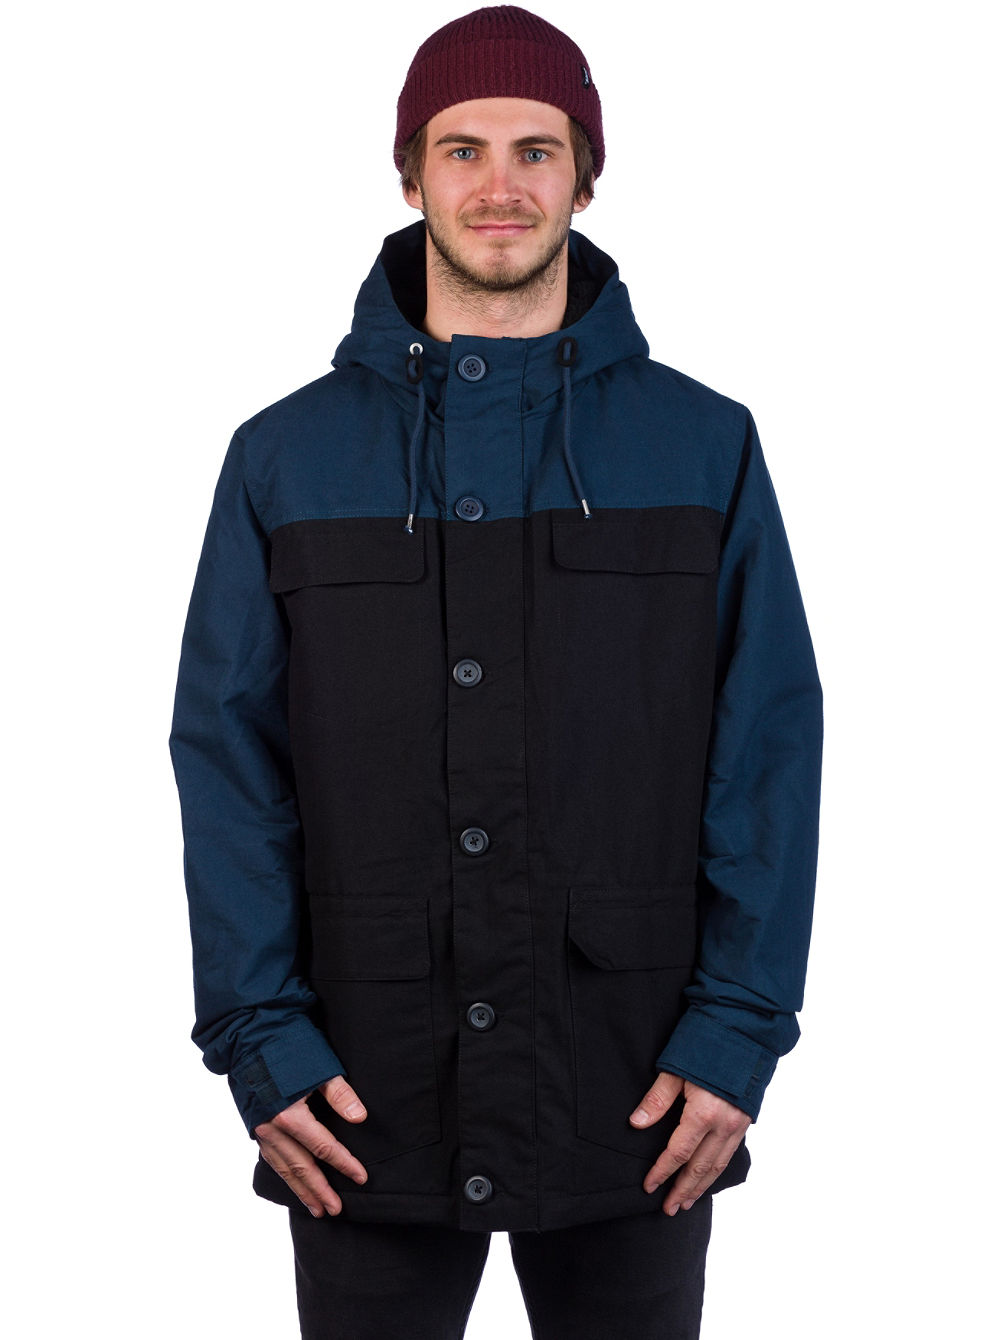 Goodstock Blocked Parka Jacket